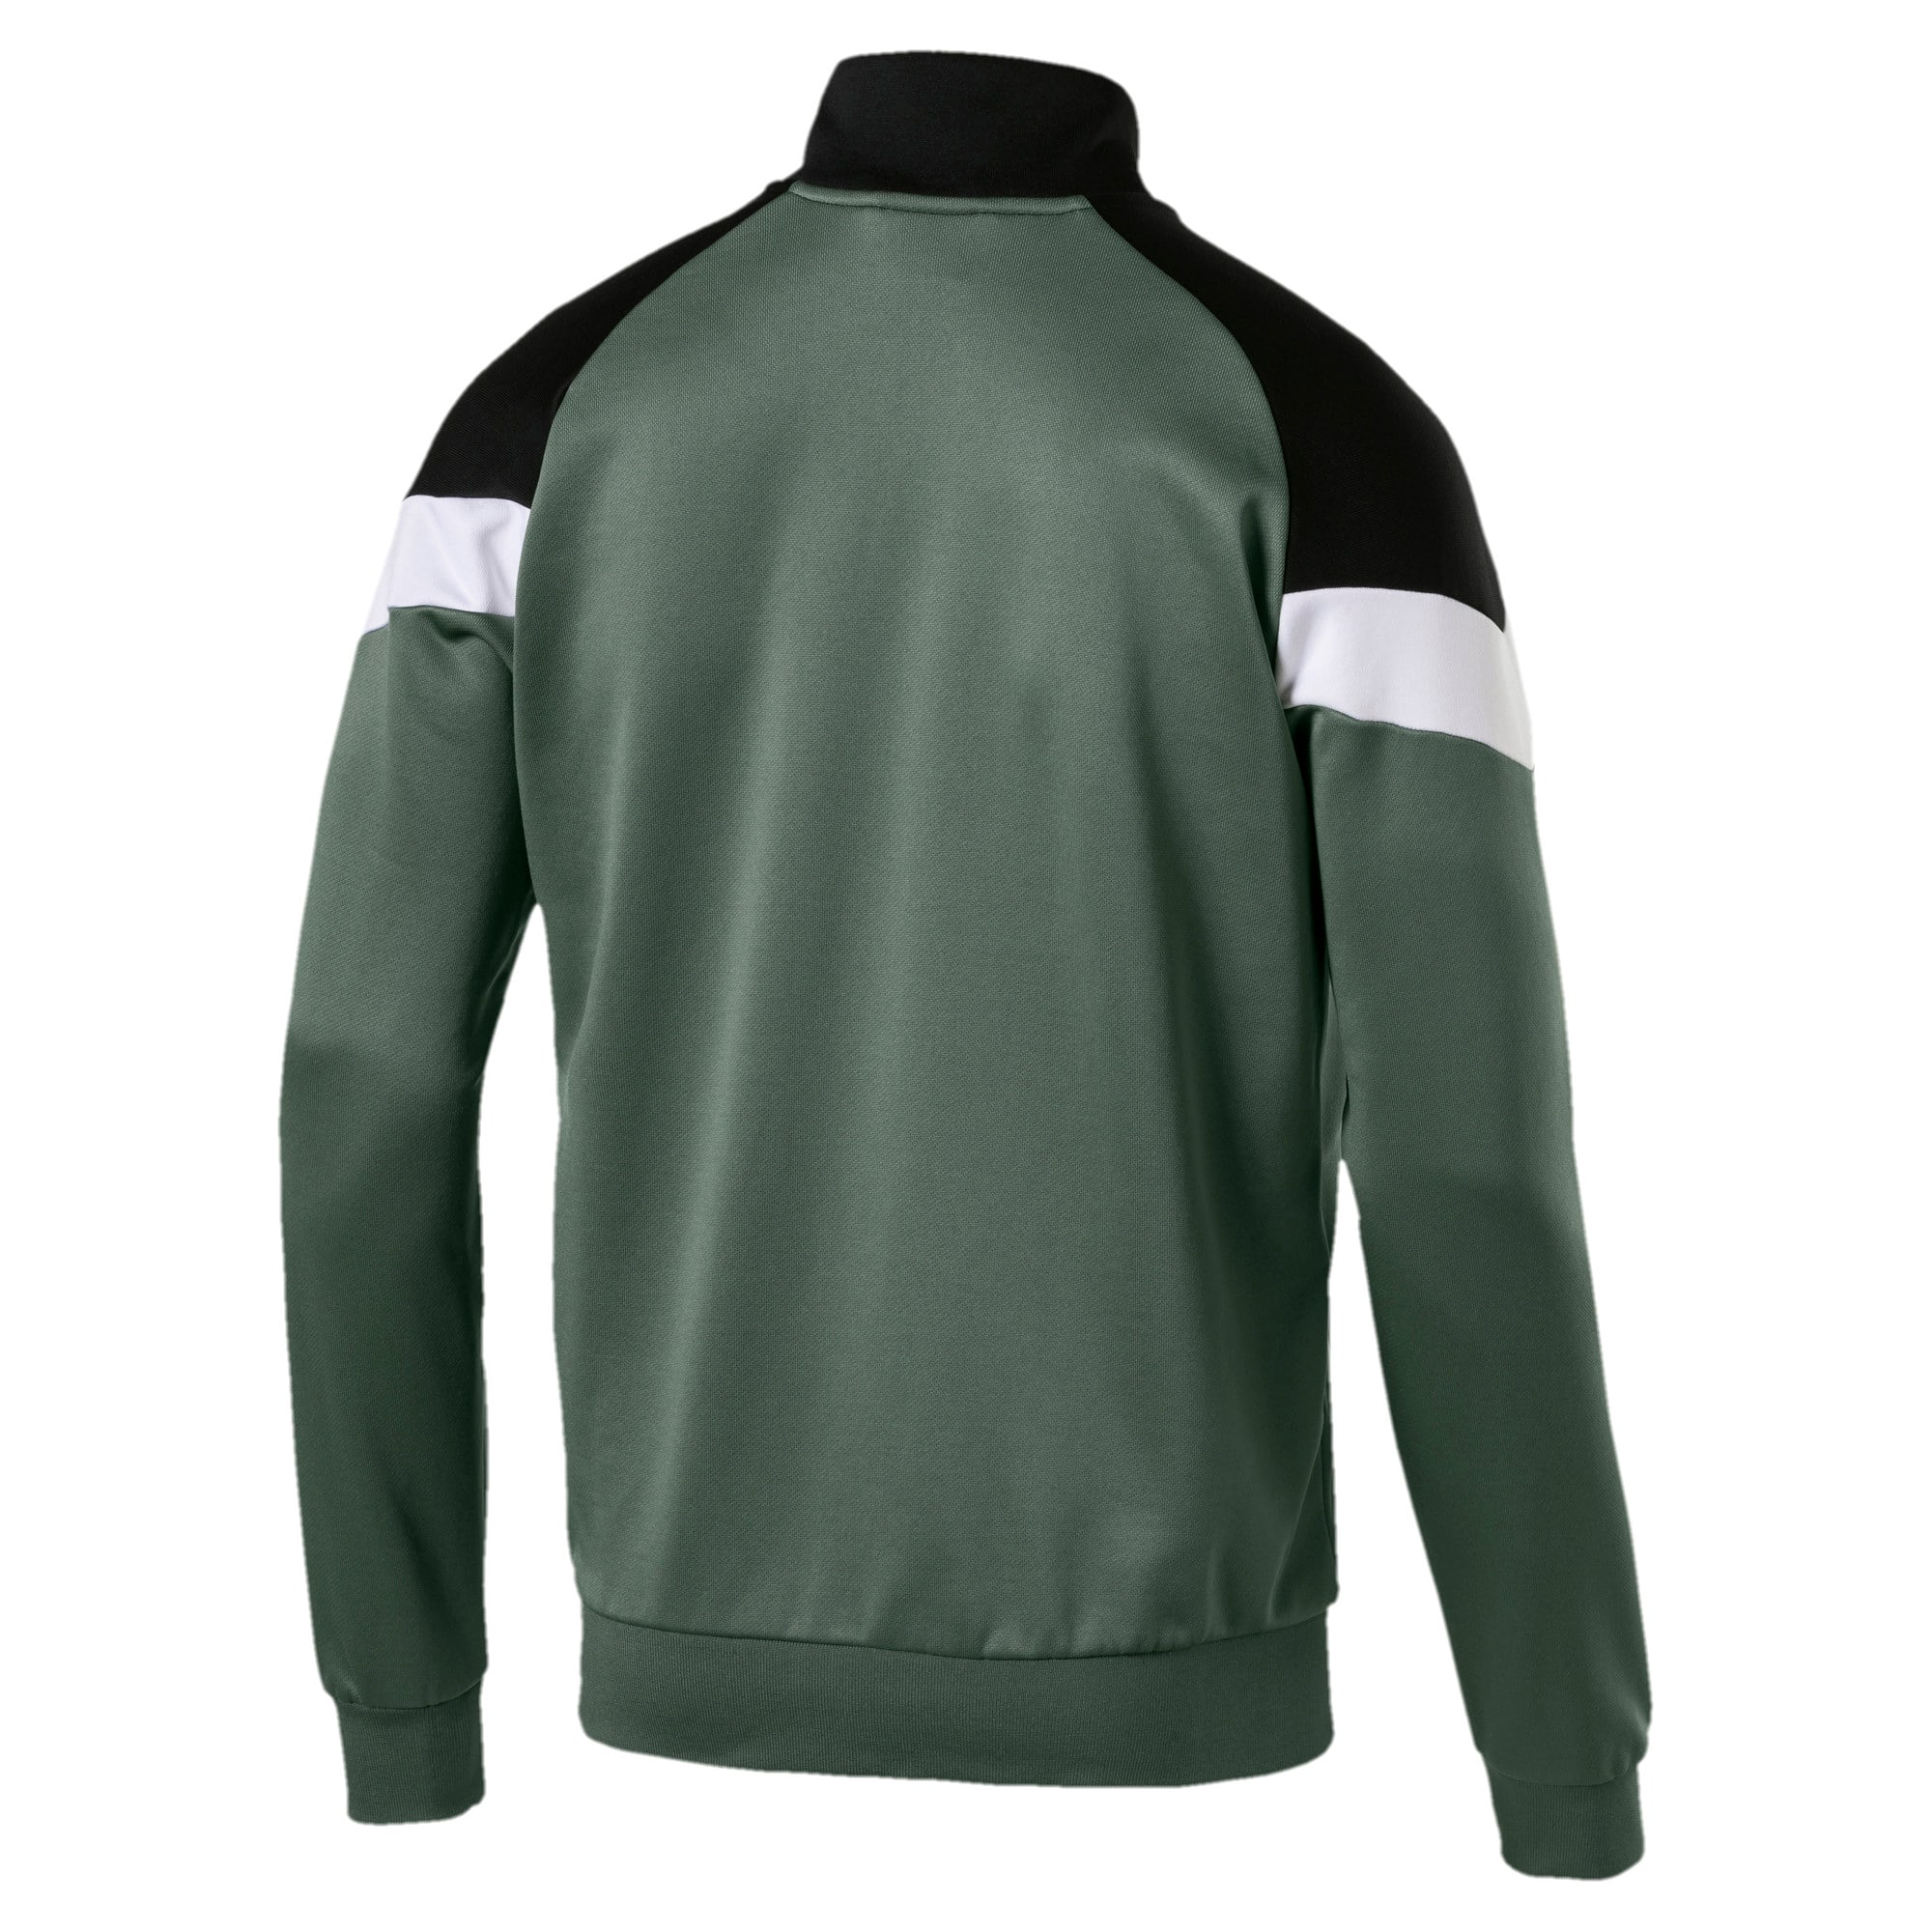 Thumbnail 2 of MCS Men's Track Jacket, Laurel Wreath, medium-IND